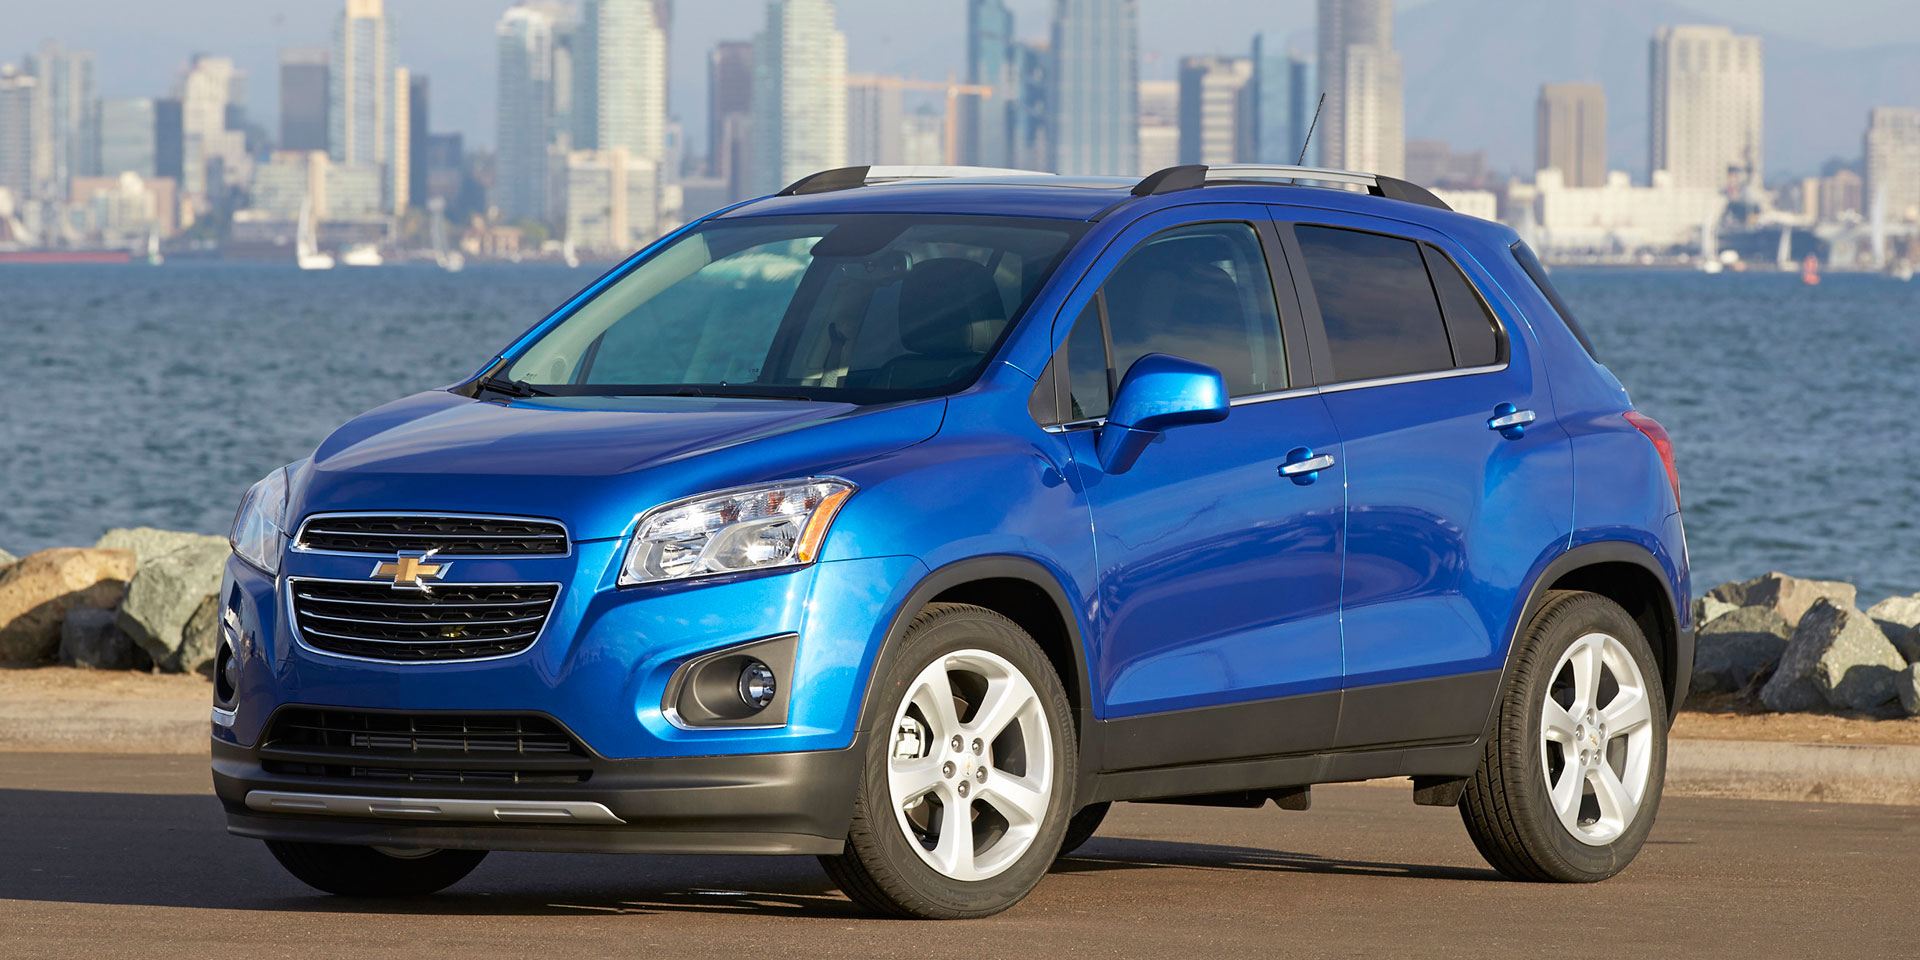 Used Cars For Sale New Cars For Sale Car Dealers Cars Chicago - Chevrolet dealers in chicago